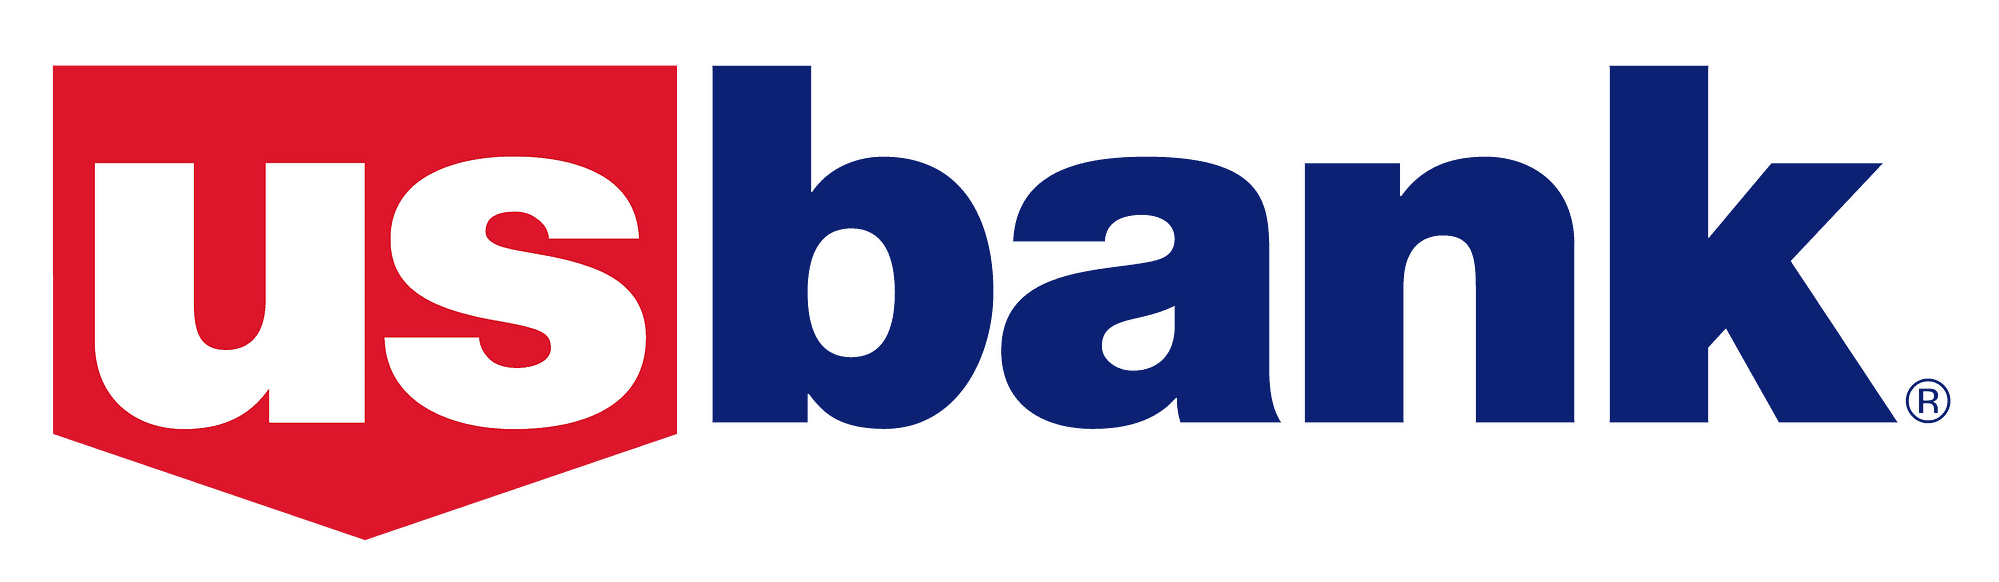 logo for US Bank